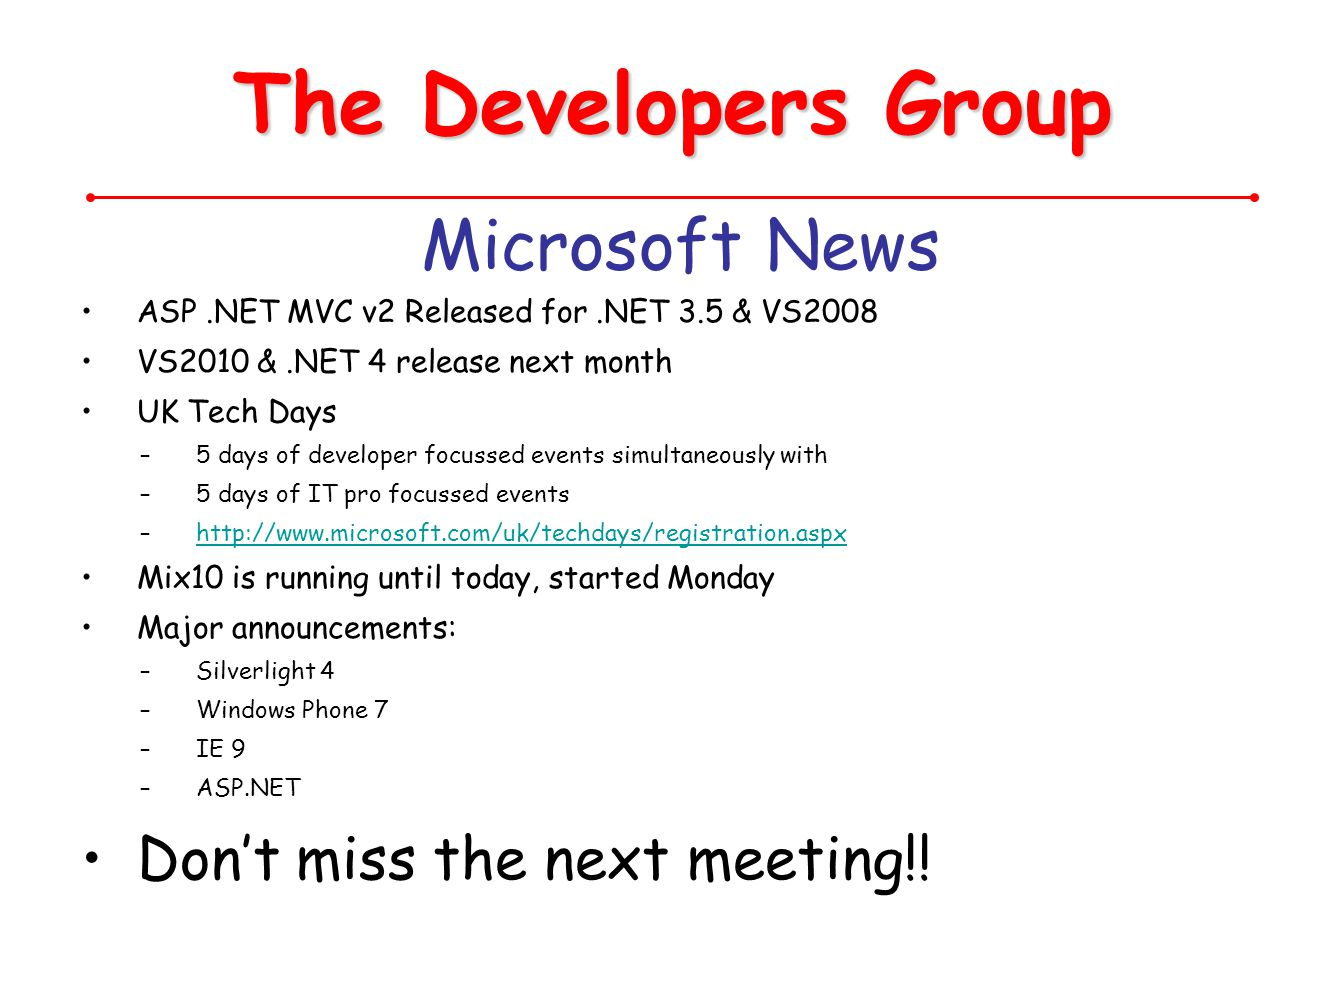 The Developers Group Microsoft News ASP.NET MVC v2 Released for.NET 3.5 & VS2008 VS2010 &.NET 4 release next month UK Tech Days –5 days of developer focussed events simultaneously with –5 days of IT pro focussed events –http://www.microsoft.com/uk/techdays/registration.aspxhttp://www.microsoft.com/uk/techdays/registration.aspx Mix10 is running until today, started Monday Major announcements: –Silverlight 4 –Windows Phone 7 –IE 9 –ASP.NET Dont miss the next meeting!!